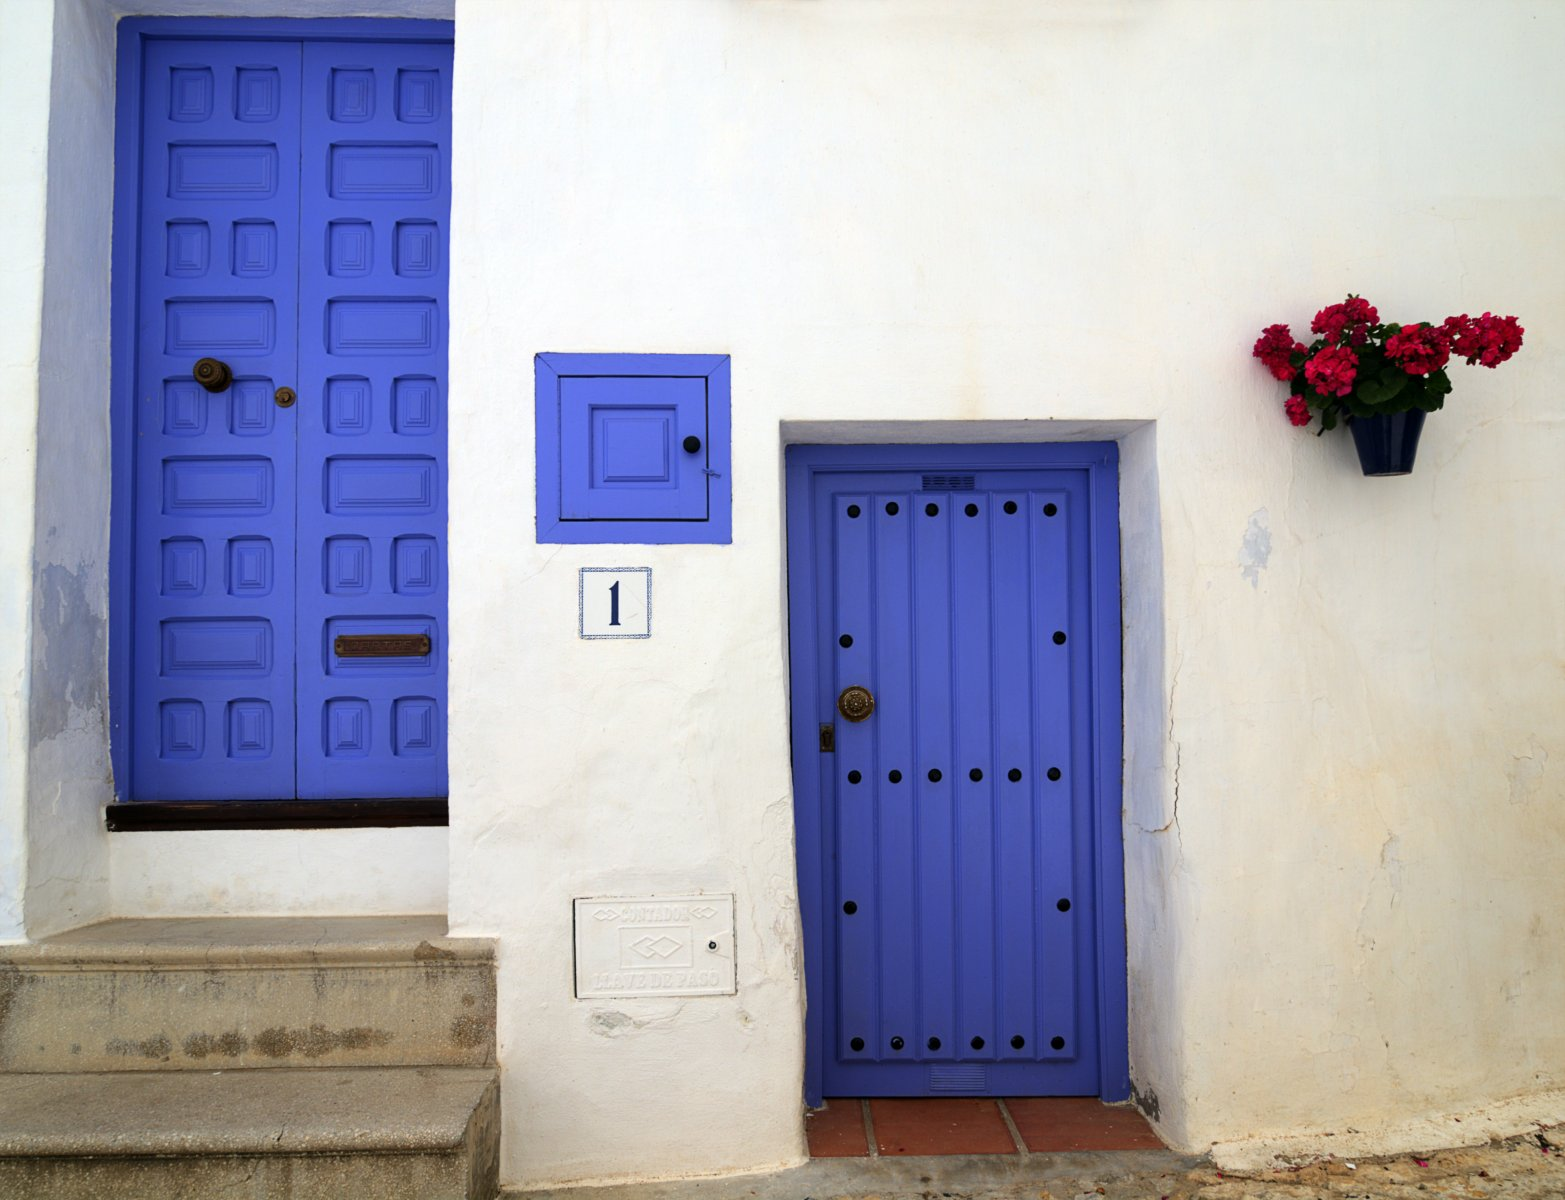 Blue Doors in the town of Frigiliana, Andalucia